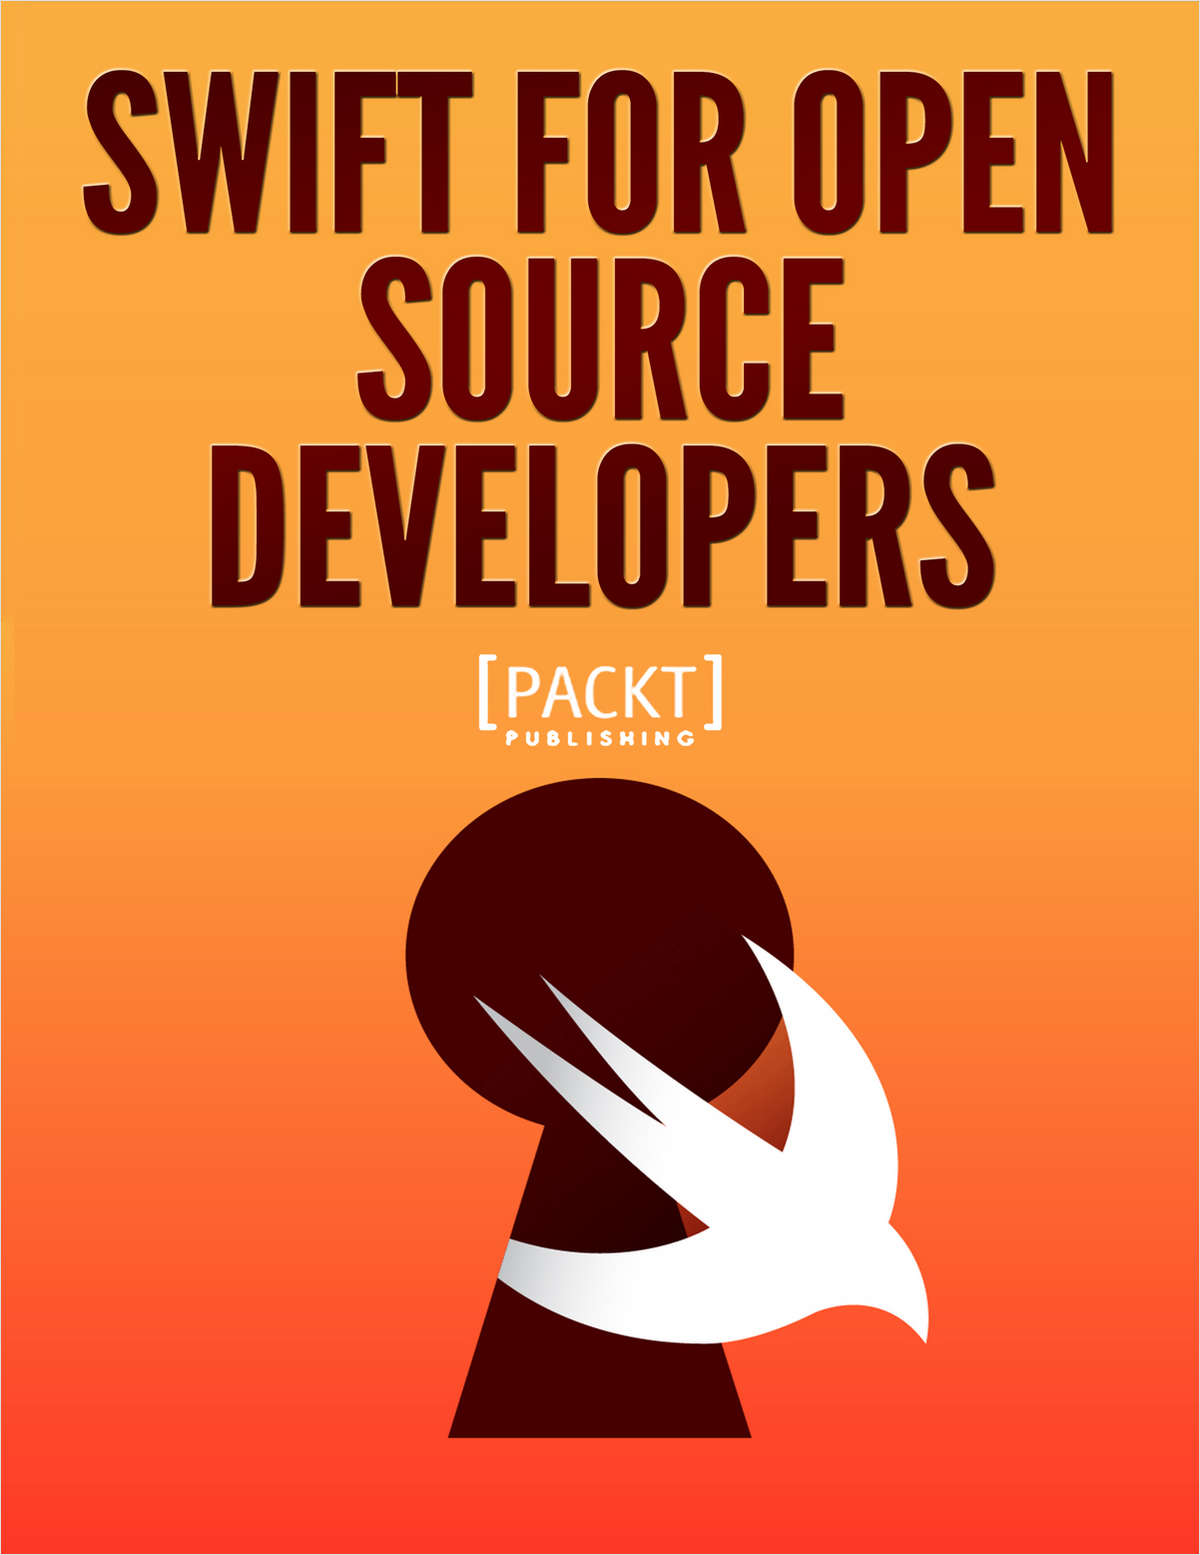 Swift for Open Source Developers